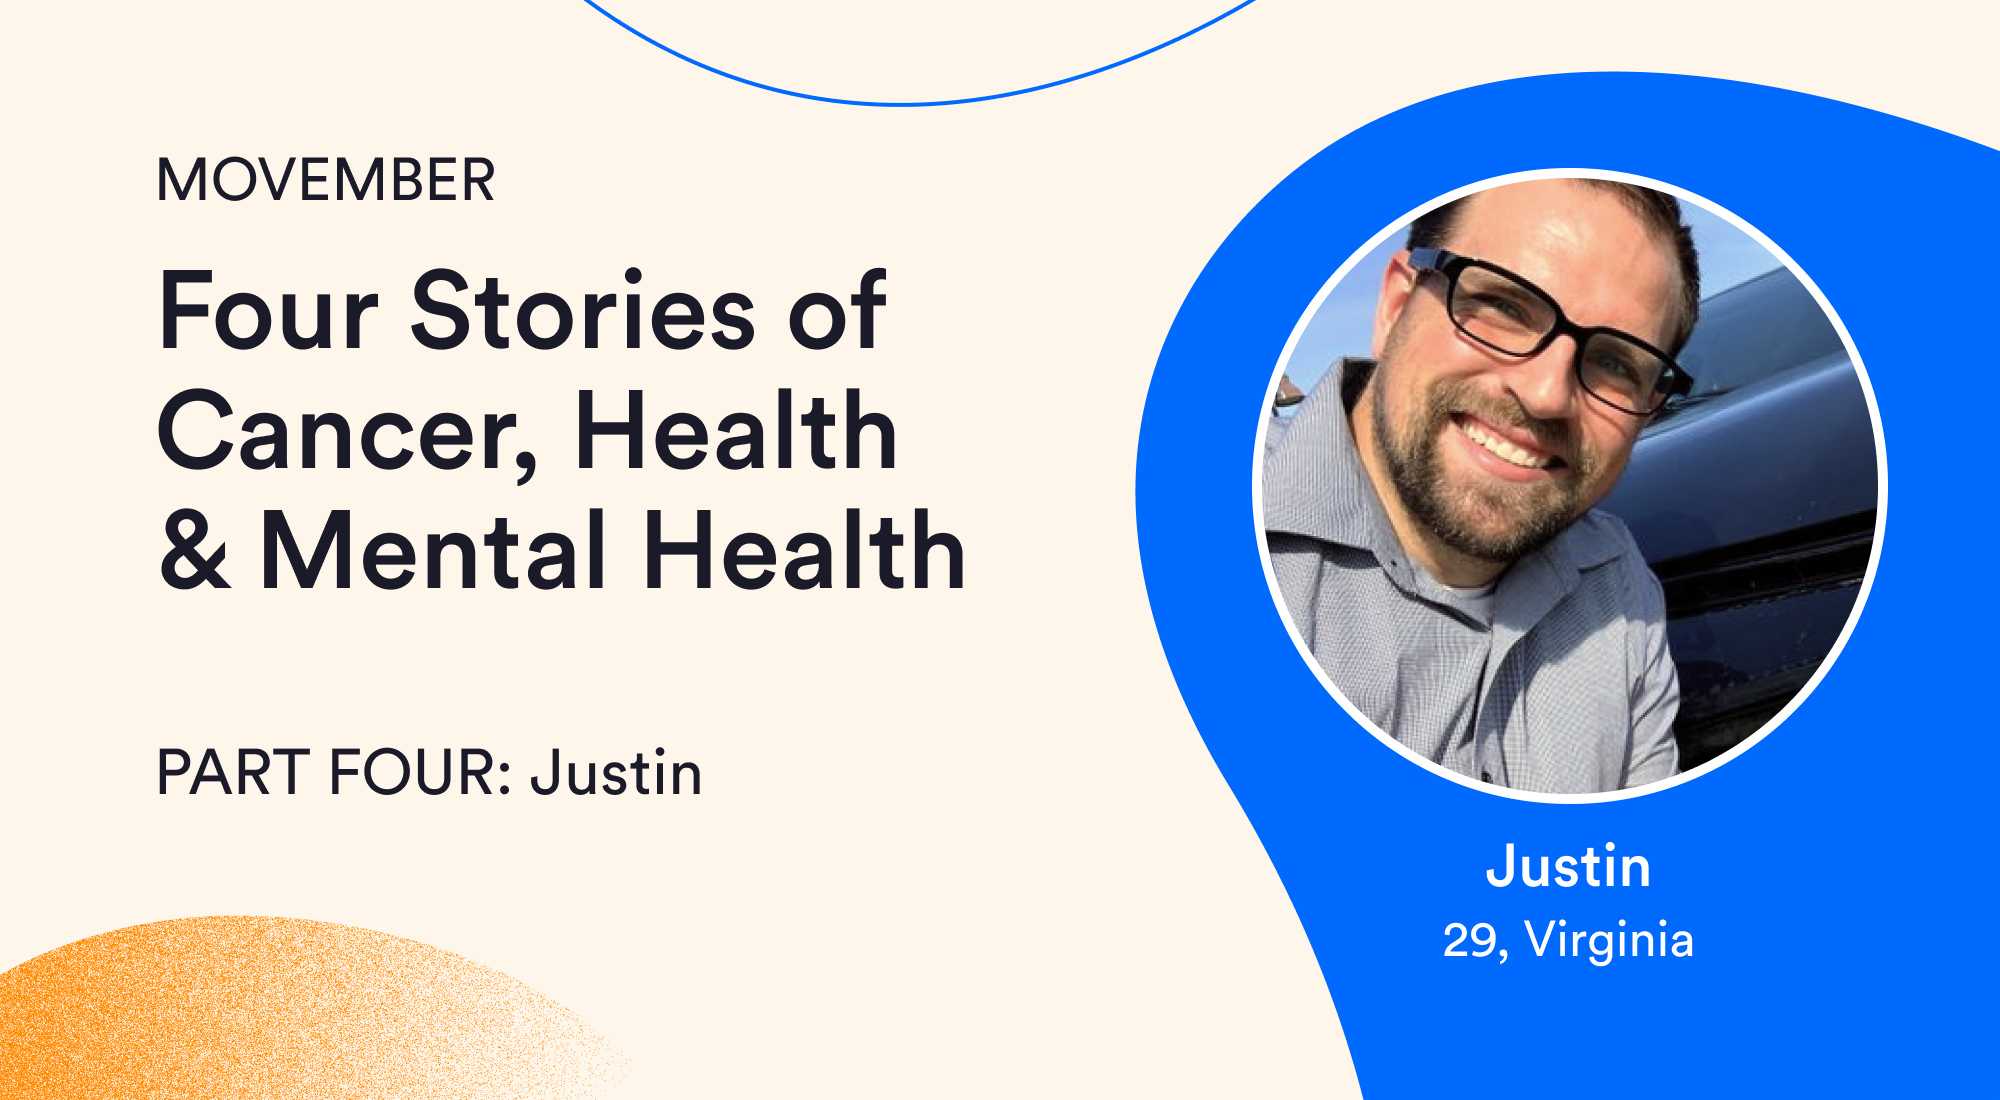 Four stories of cancer, health, and mental health, part four: Justin